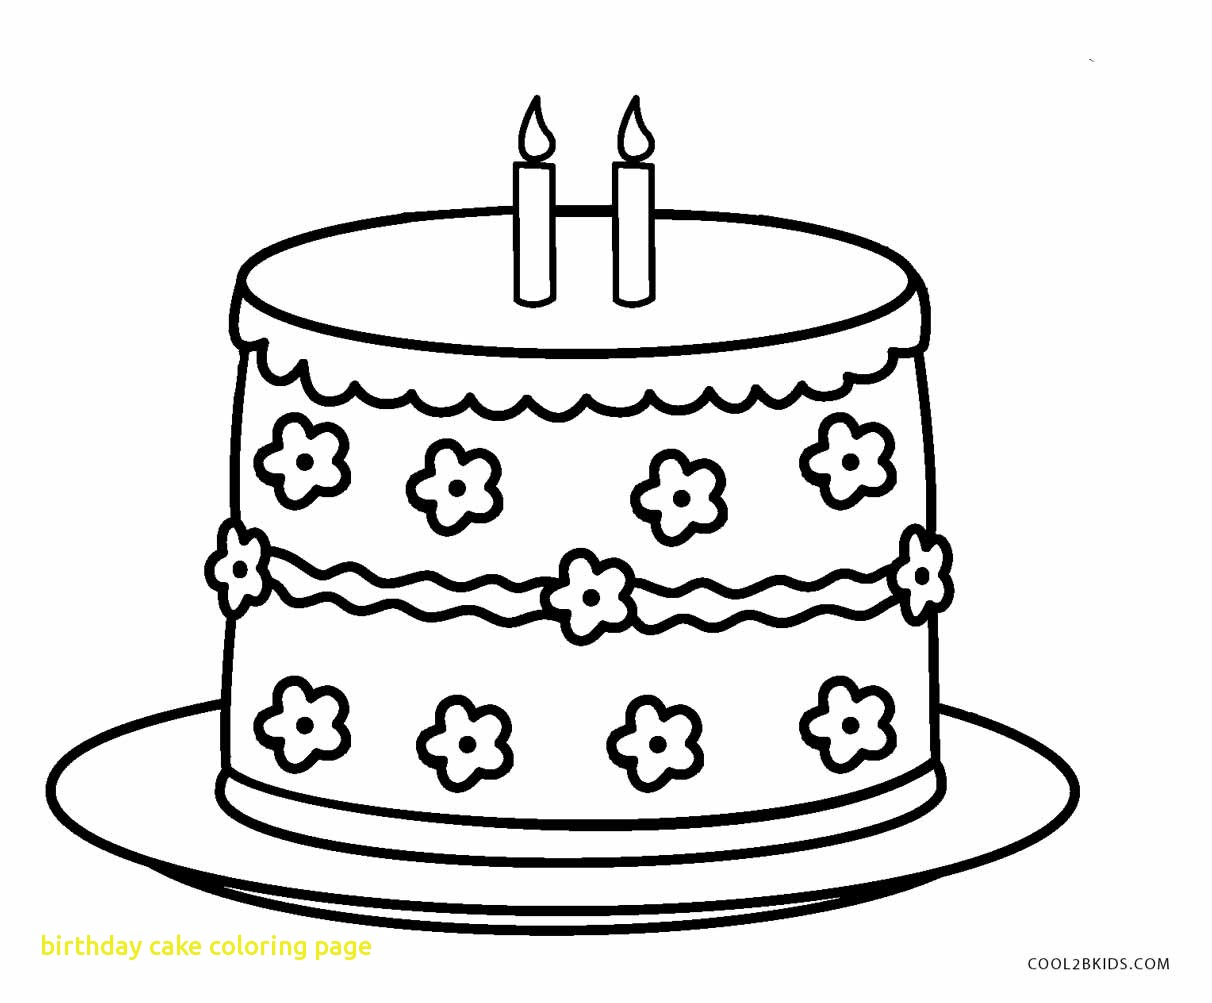 1212x1003 Birthday Cake Coloring Page With Free Printable Birthday Cake Cake